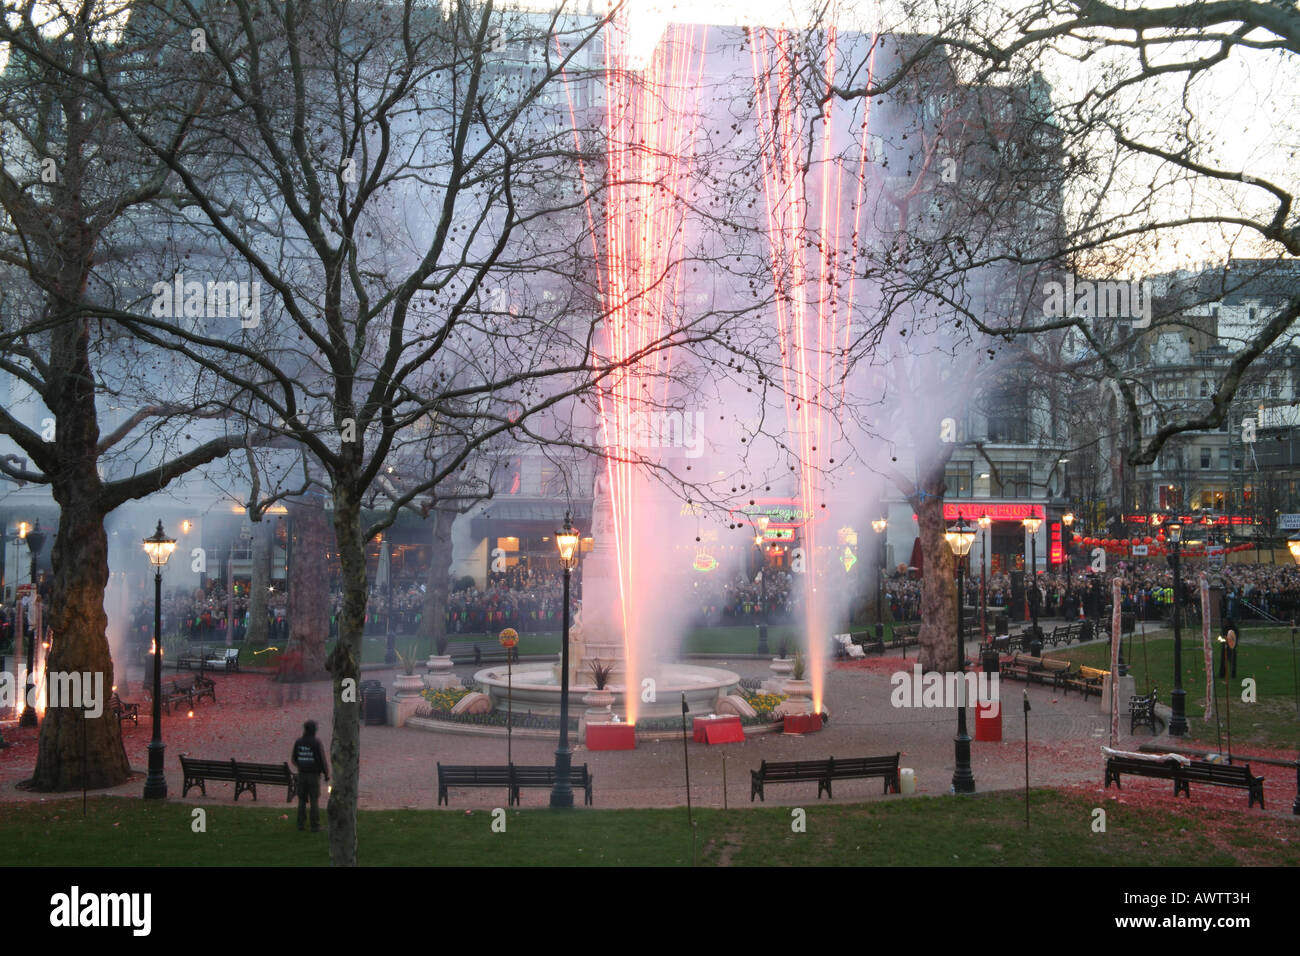 Firework display at the Chinese New Year celebrations, Leicester Square, London, 2008 - Stock Image